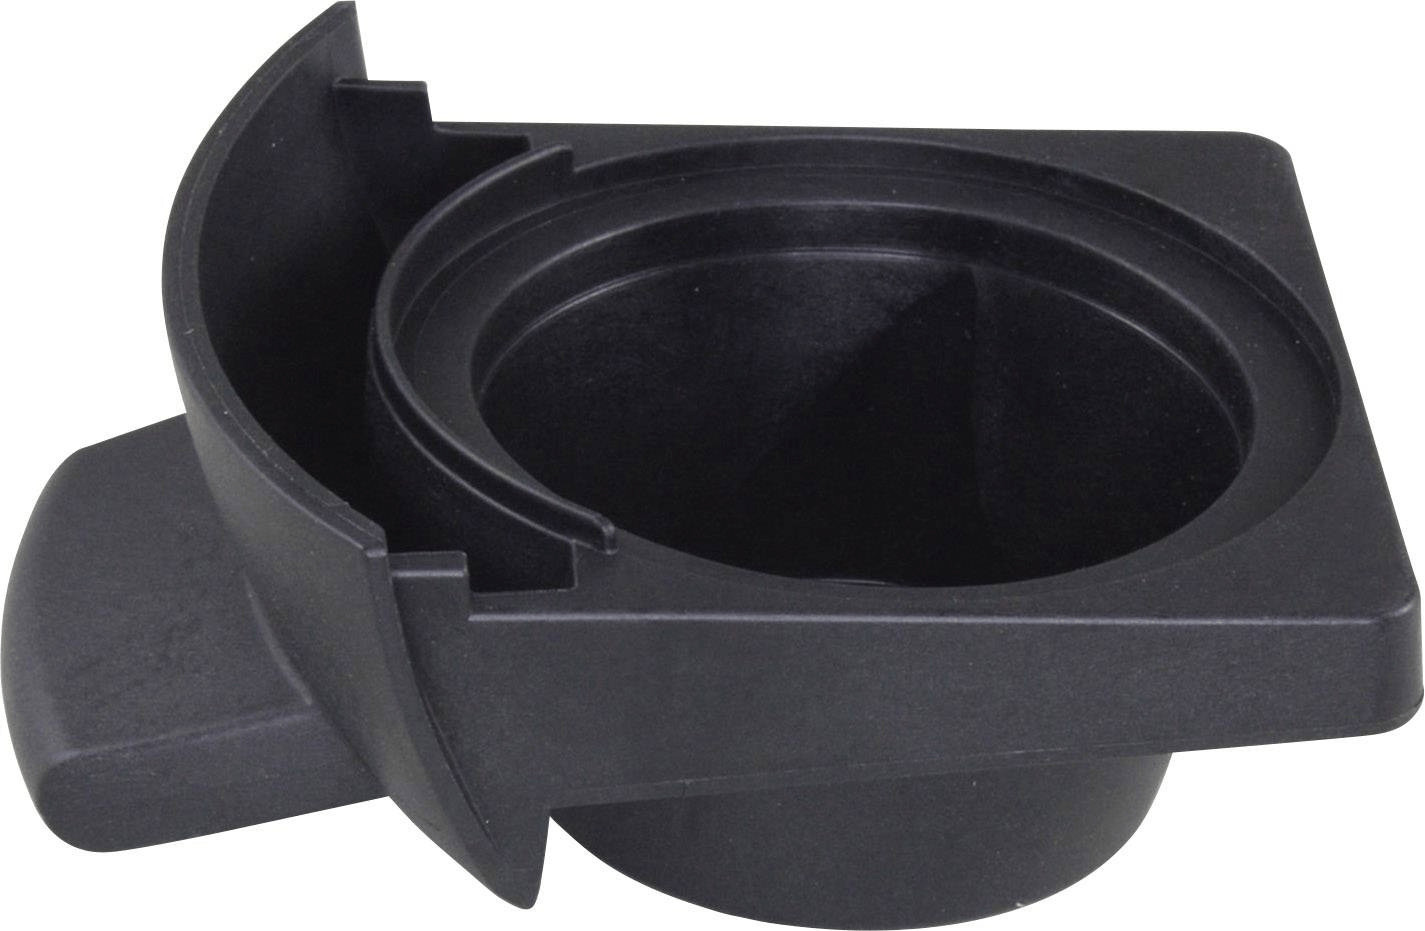 Image of Krups Capsule Holder for Dolce Gusto Piccolo